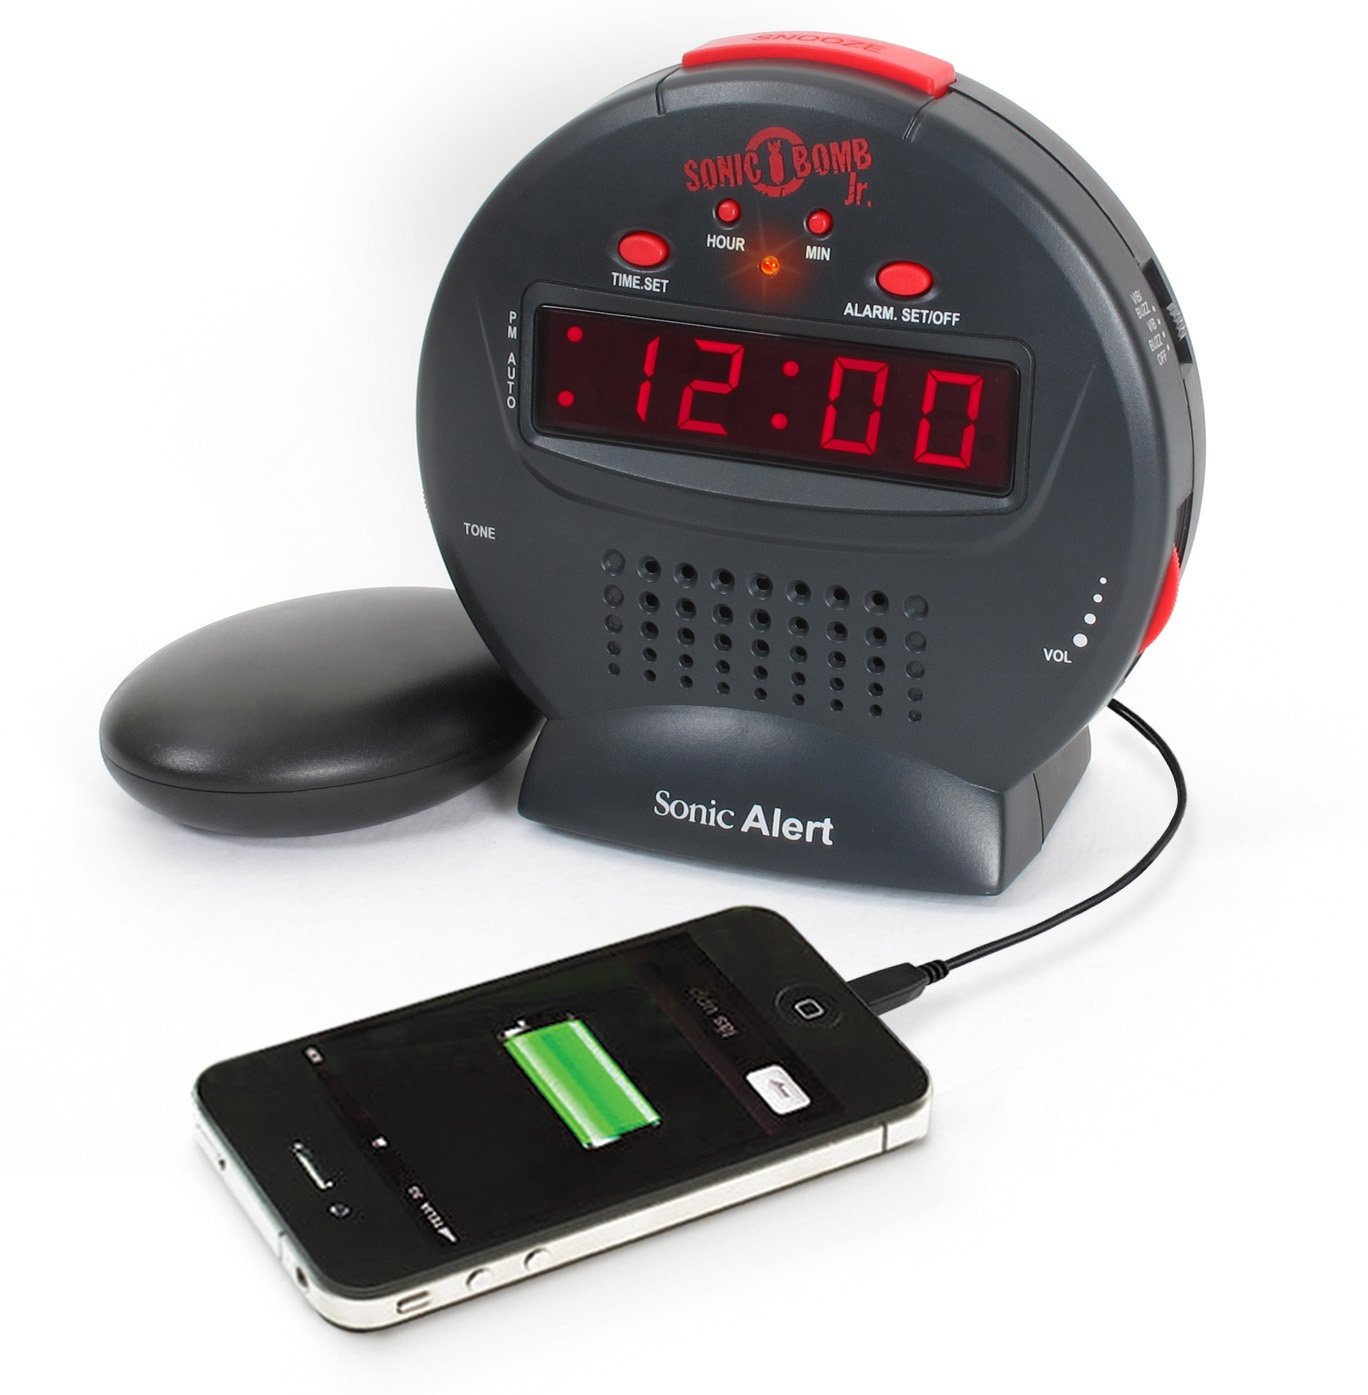 Sonic Bomb Jr  by Sonic Alert Loud Alarm Clock with Bed Shaker Vibrator   For Heavy Sleepers, Teenagers, People with Hearing Loss, Seniors, and the